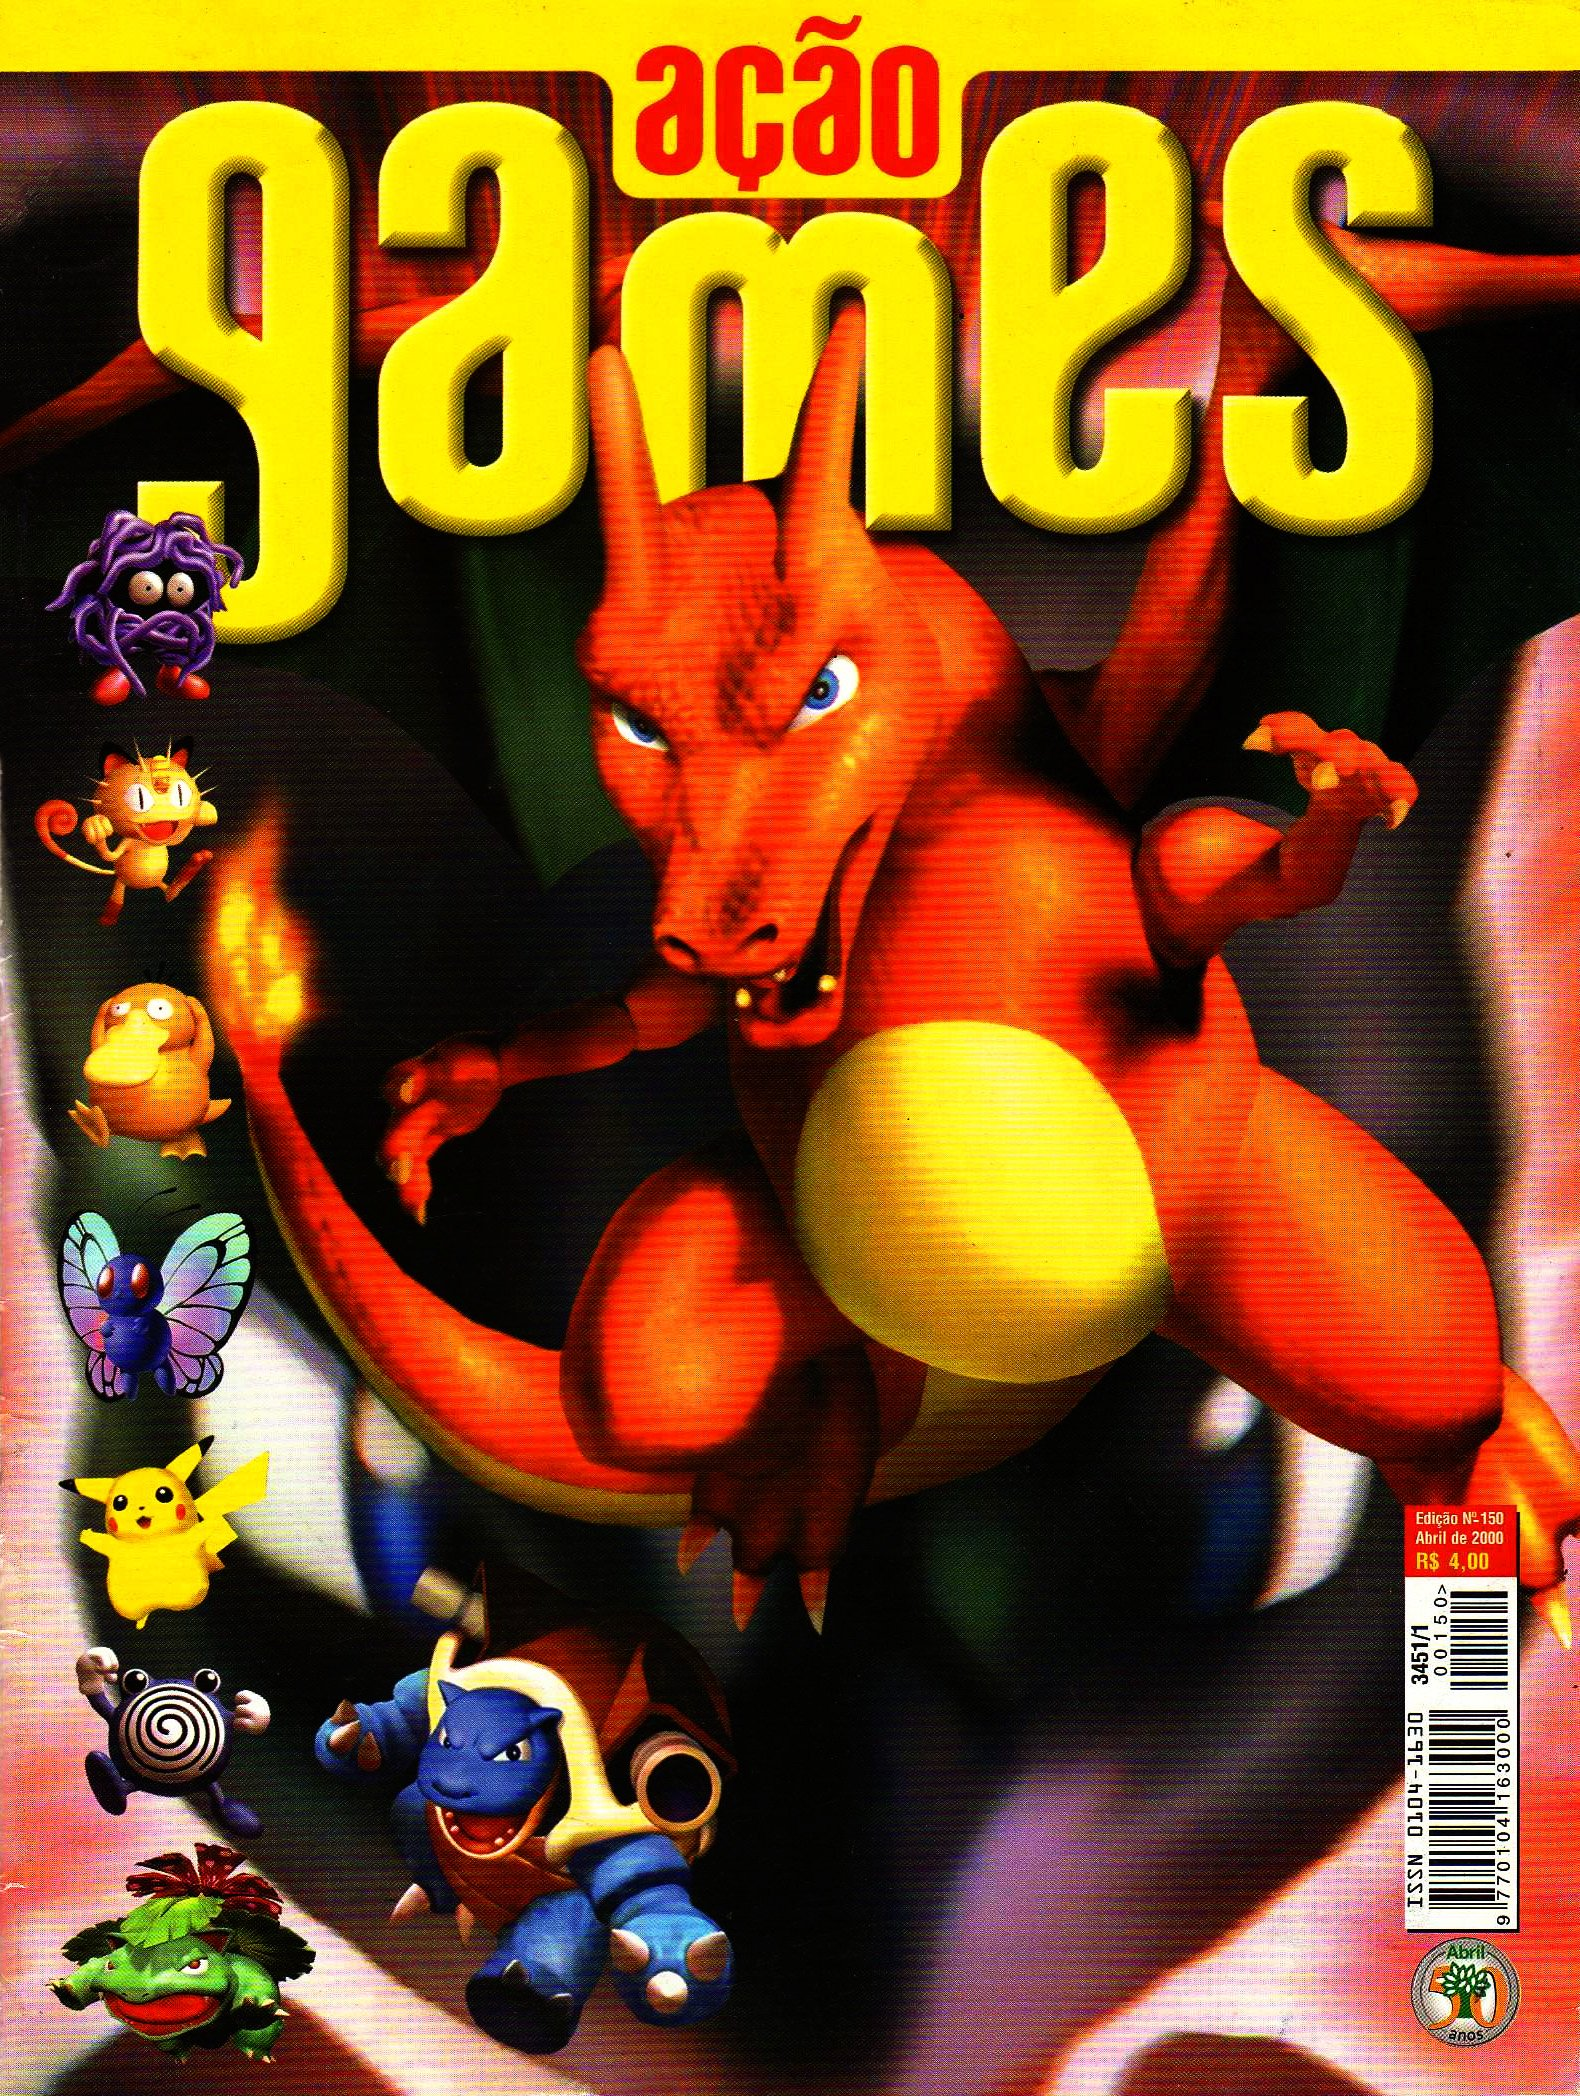 Acao Games Issue 150 (April 2000)